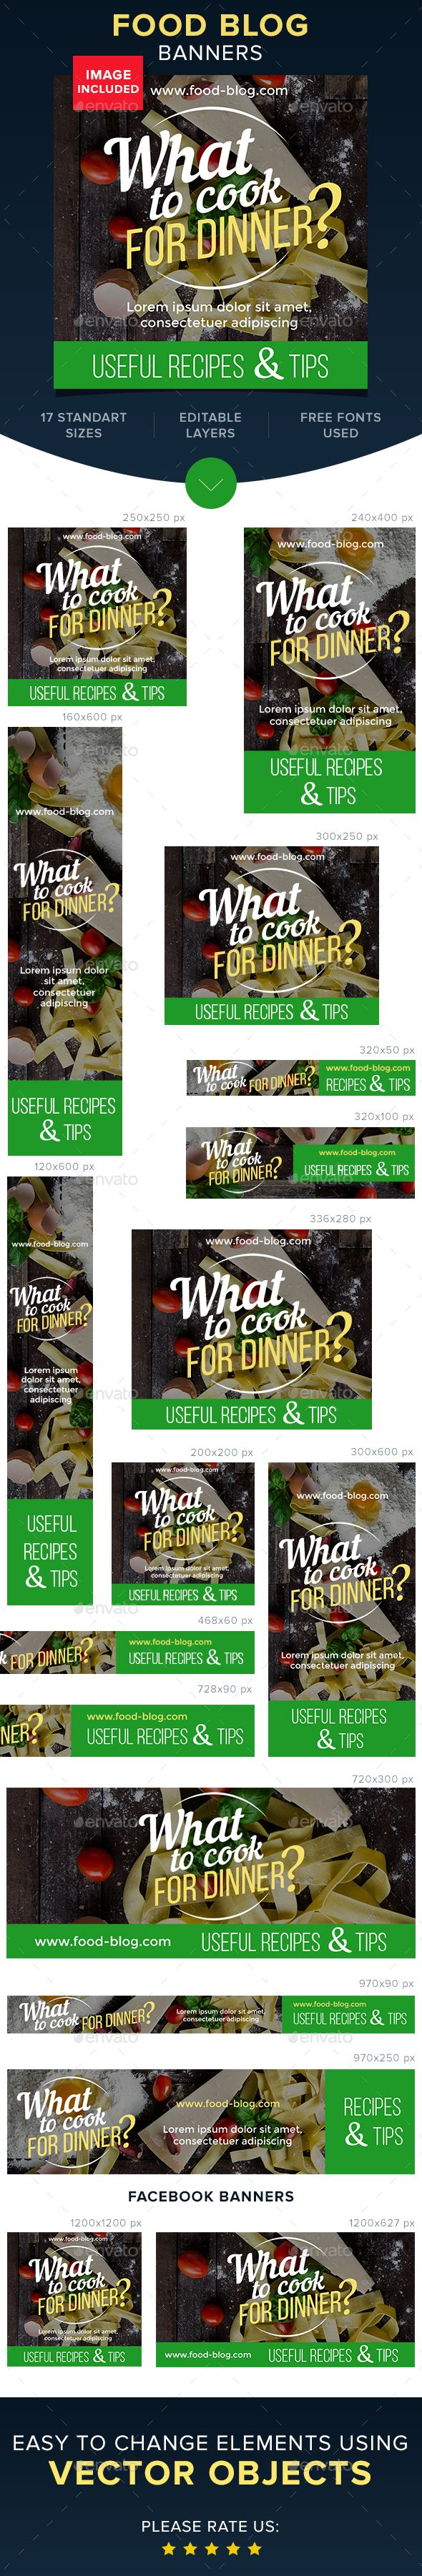 Food Blog Banners /web banners design made by Artem-ova on Enavato/